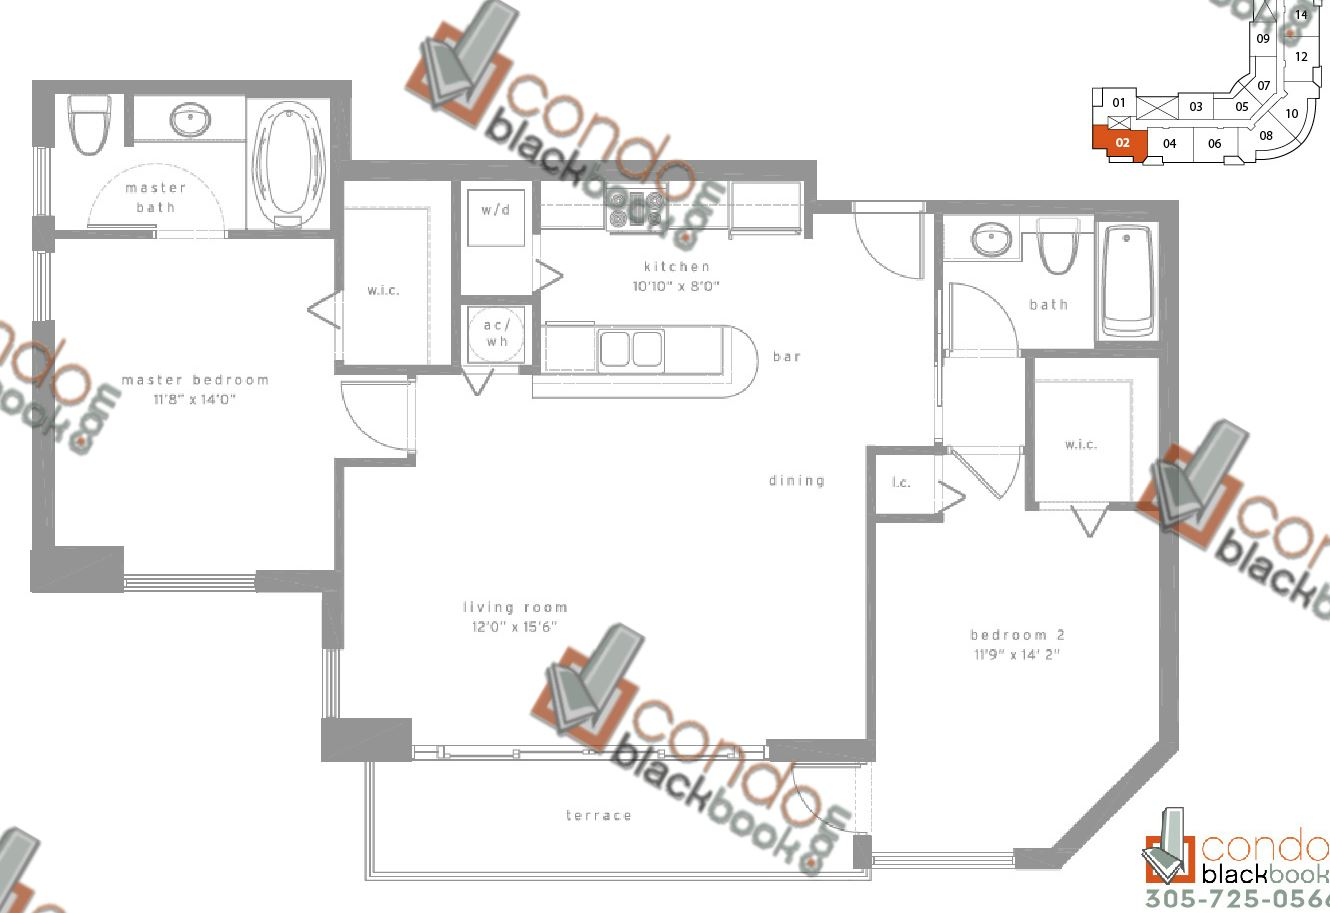 Floor plan for Met1 Downtown Miami Miami, model F, line 02, 2/2 bedrooms, 1,262 sq ft